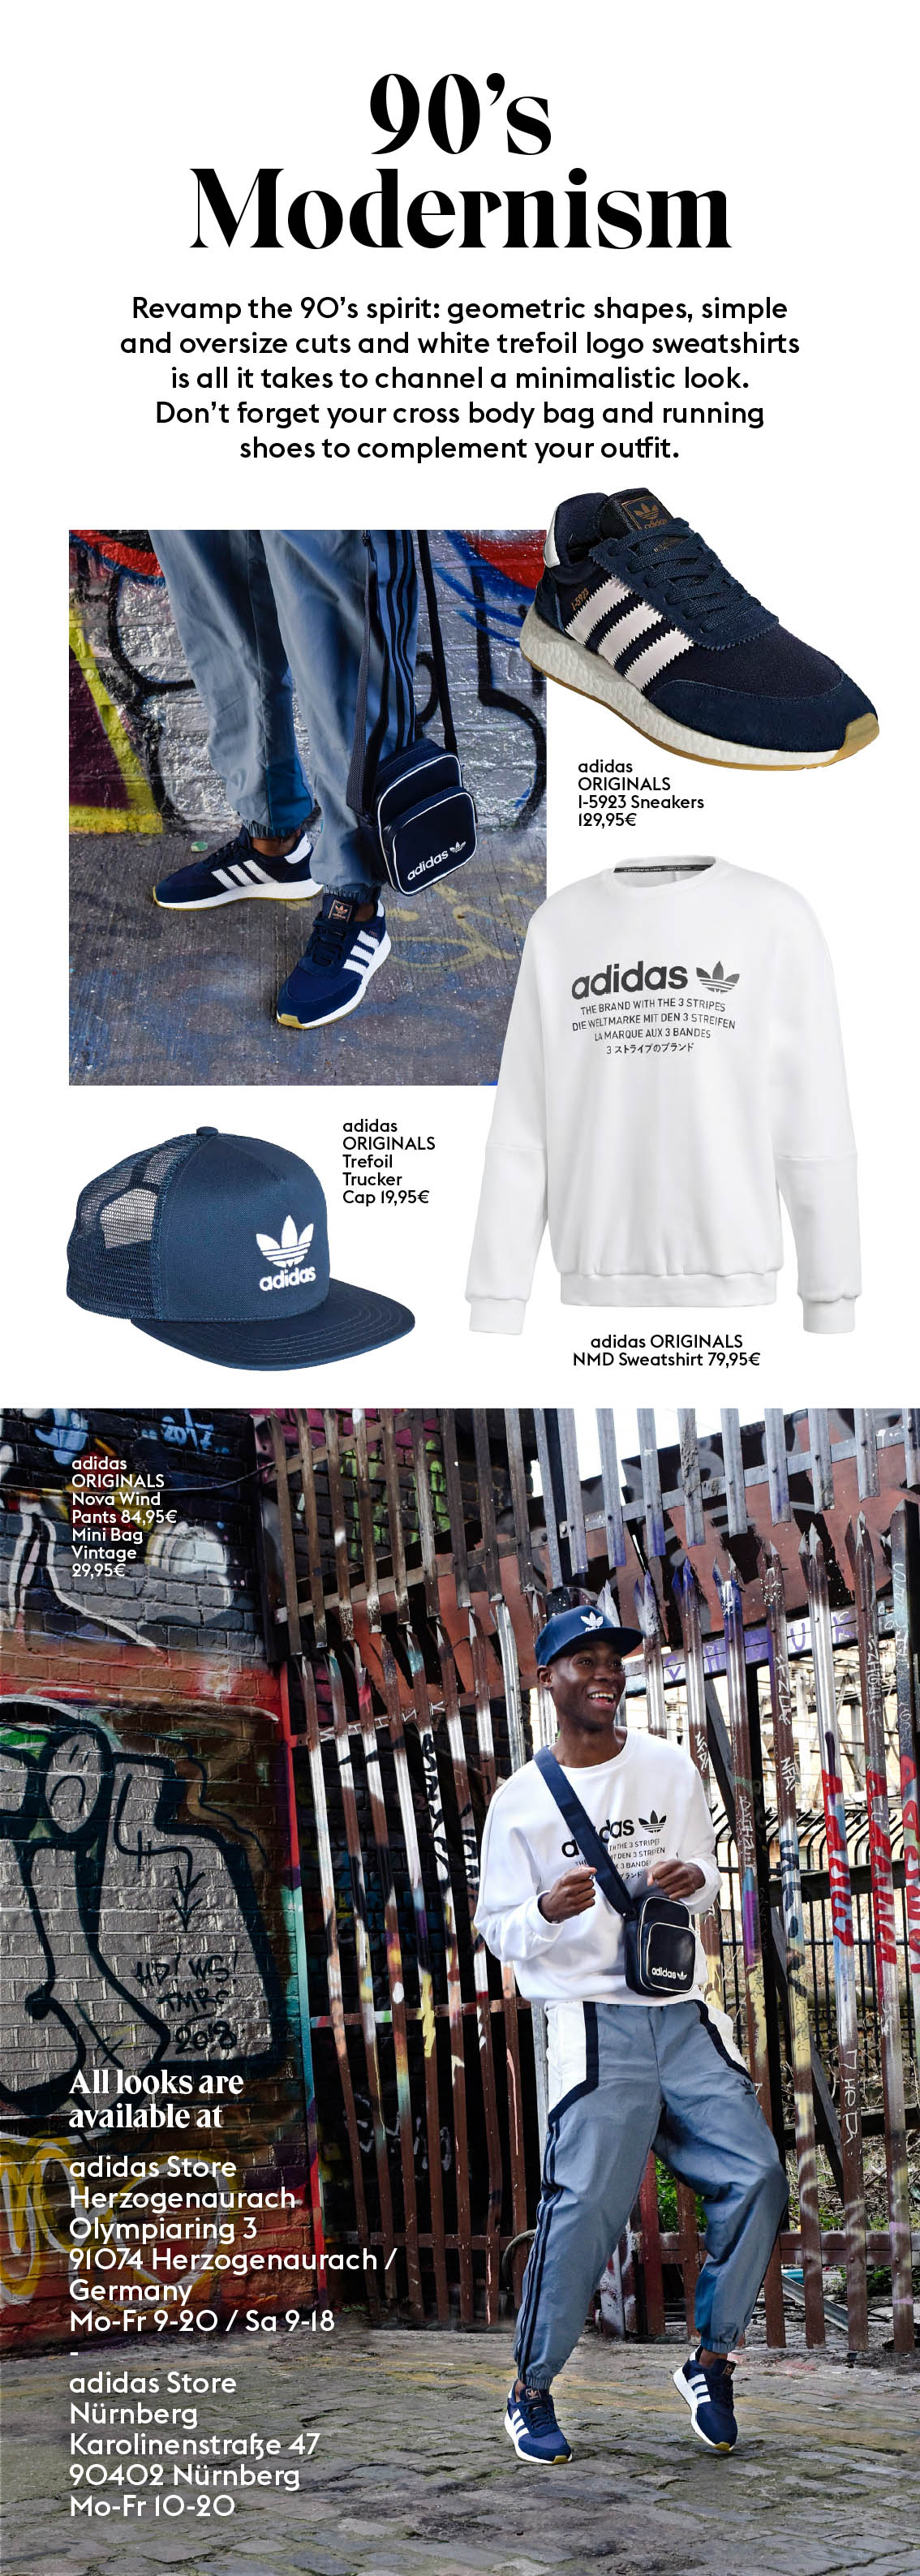 N Style x adidas Editor's Pick - Next level